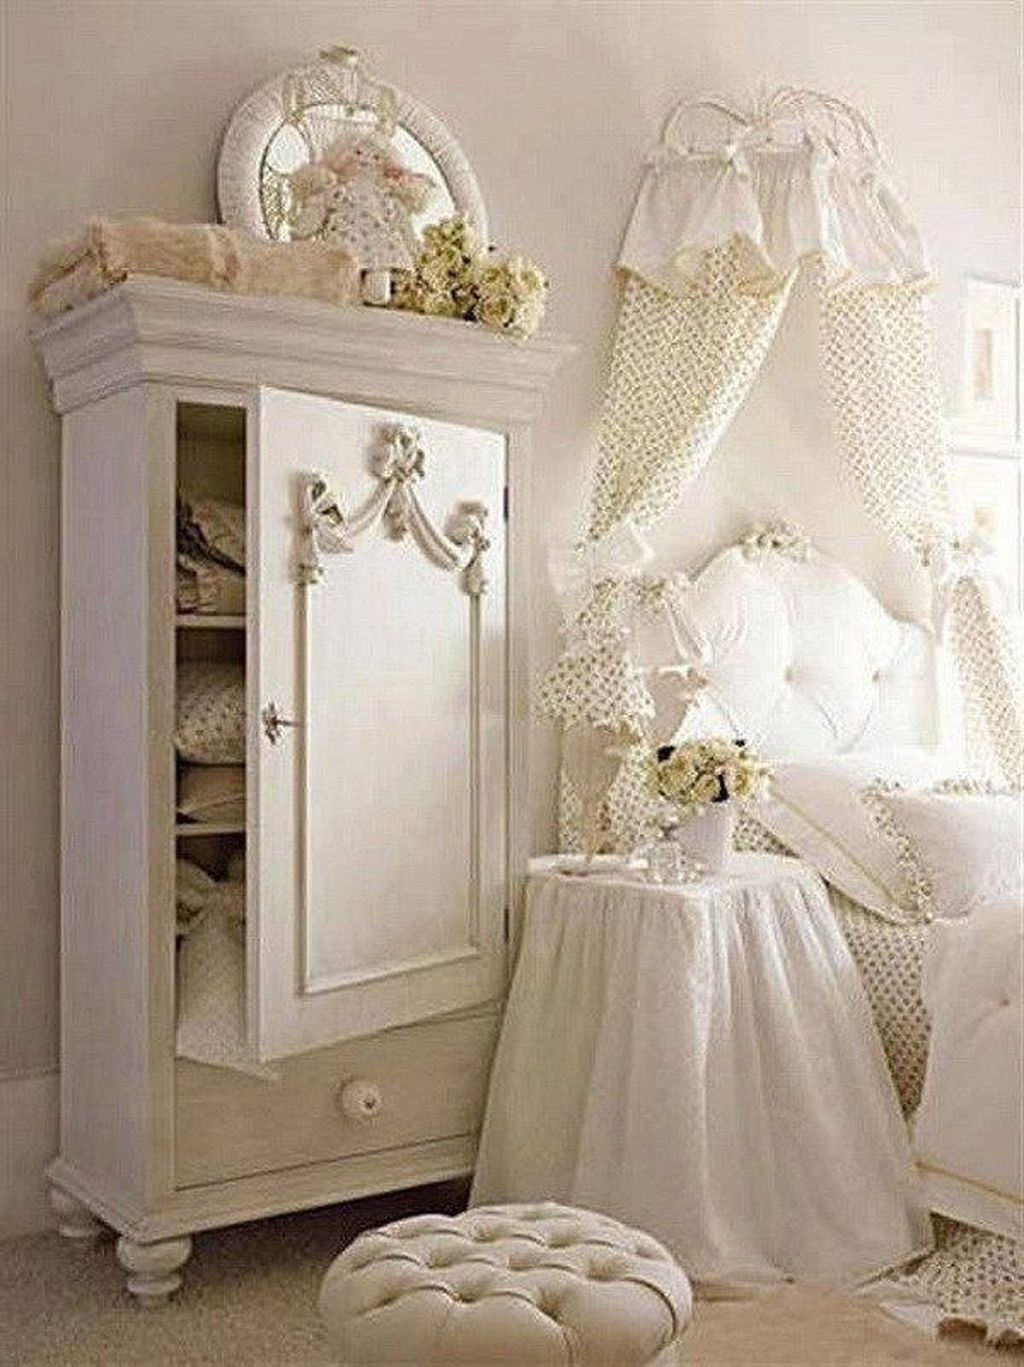 Chambre Shabby Chic Romantique Pin By Gail Jackson On Shabby Chic In 2018 Mobilier De Salon